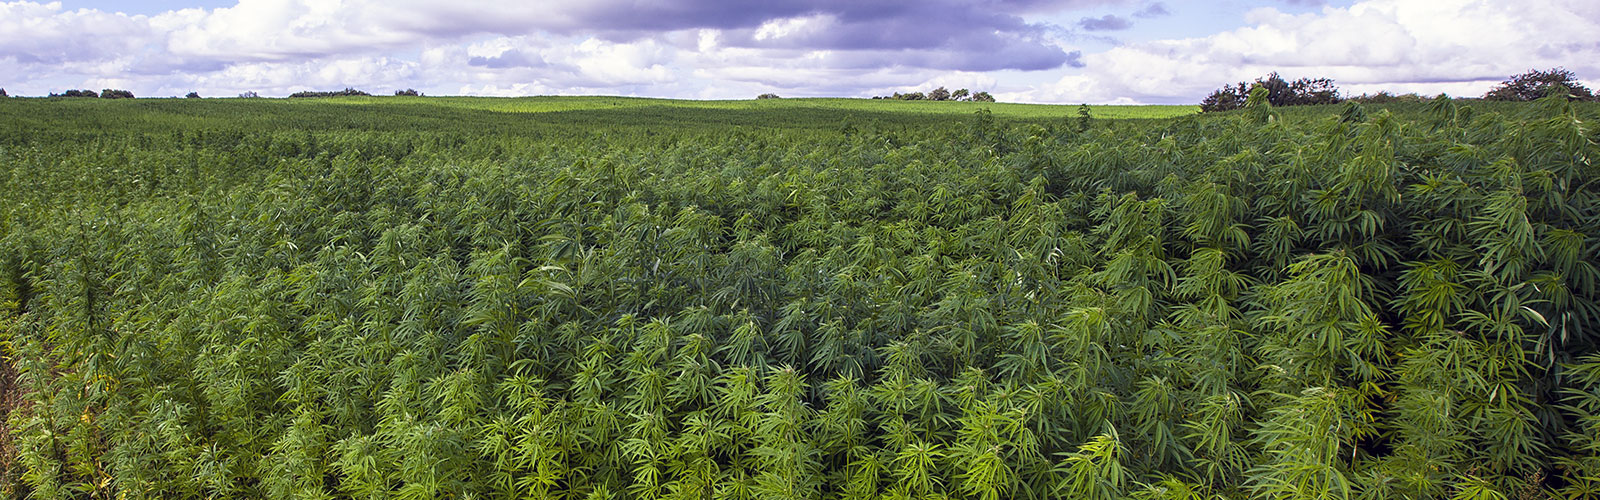 The Beginner's Guide to Hemp Farming for 2020 and Beyond